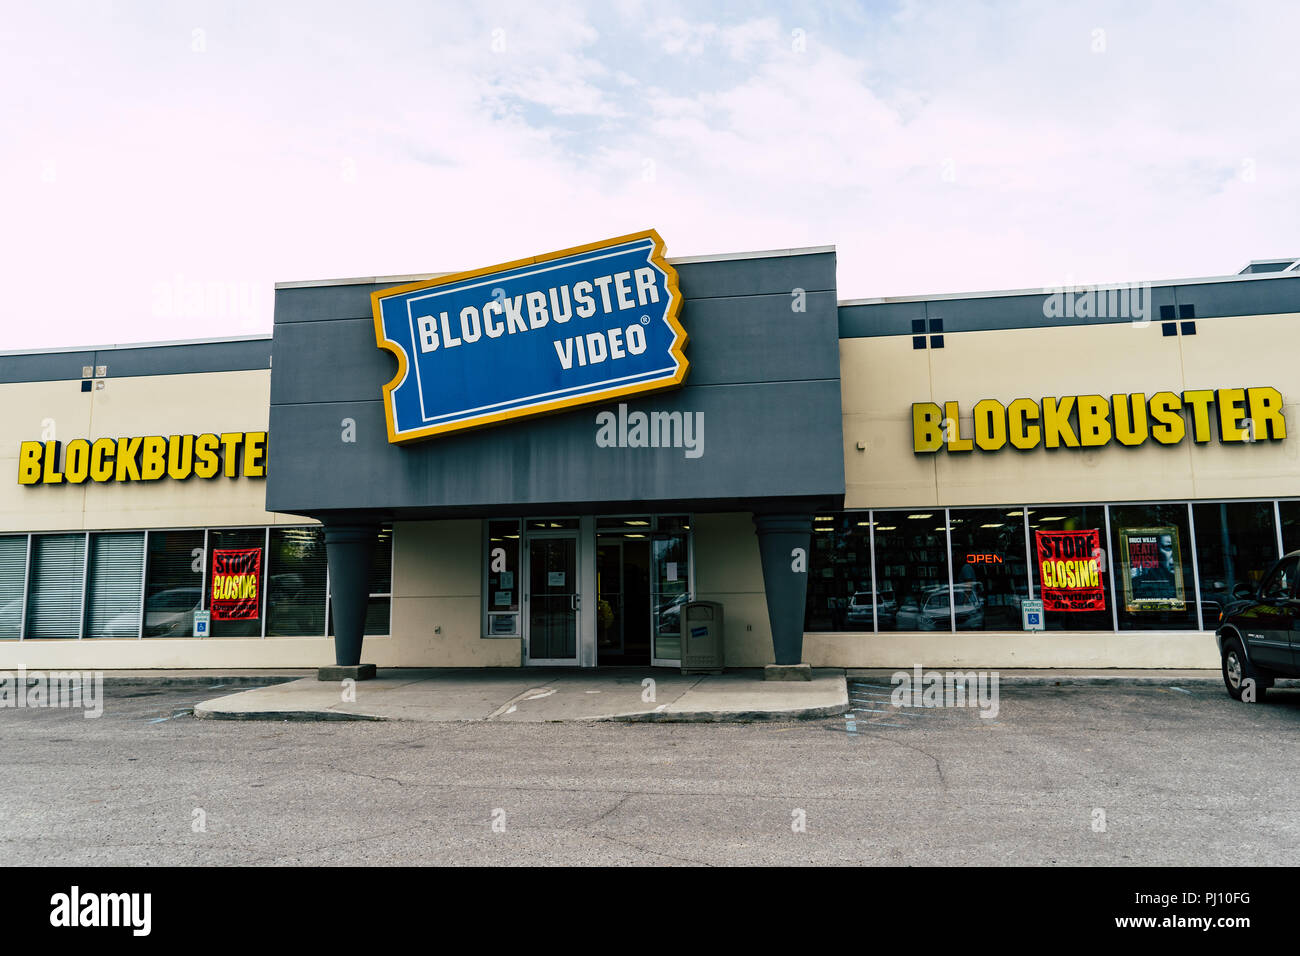 AUGUST 10 2018 - FAIRBANKS ALASKA: Exterior view of a closing Blockbuster Video movie rental store. Very few locations remain in the world - Stock Image